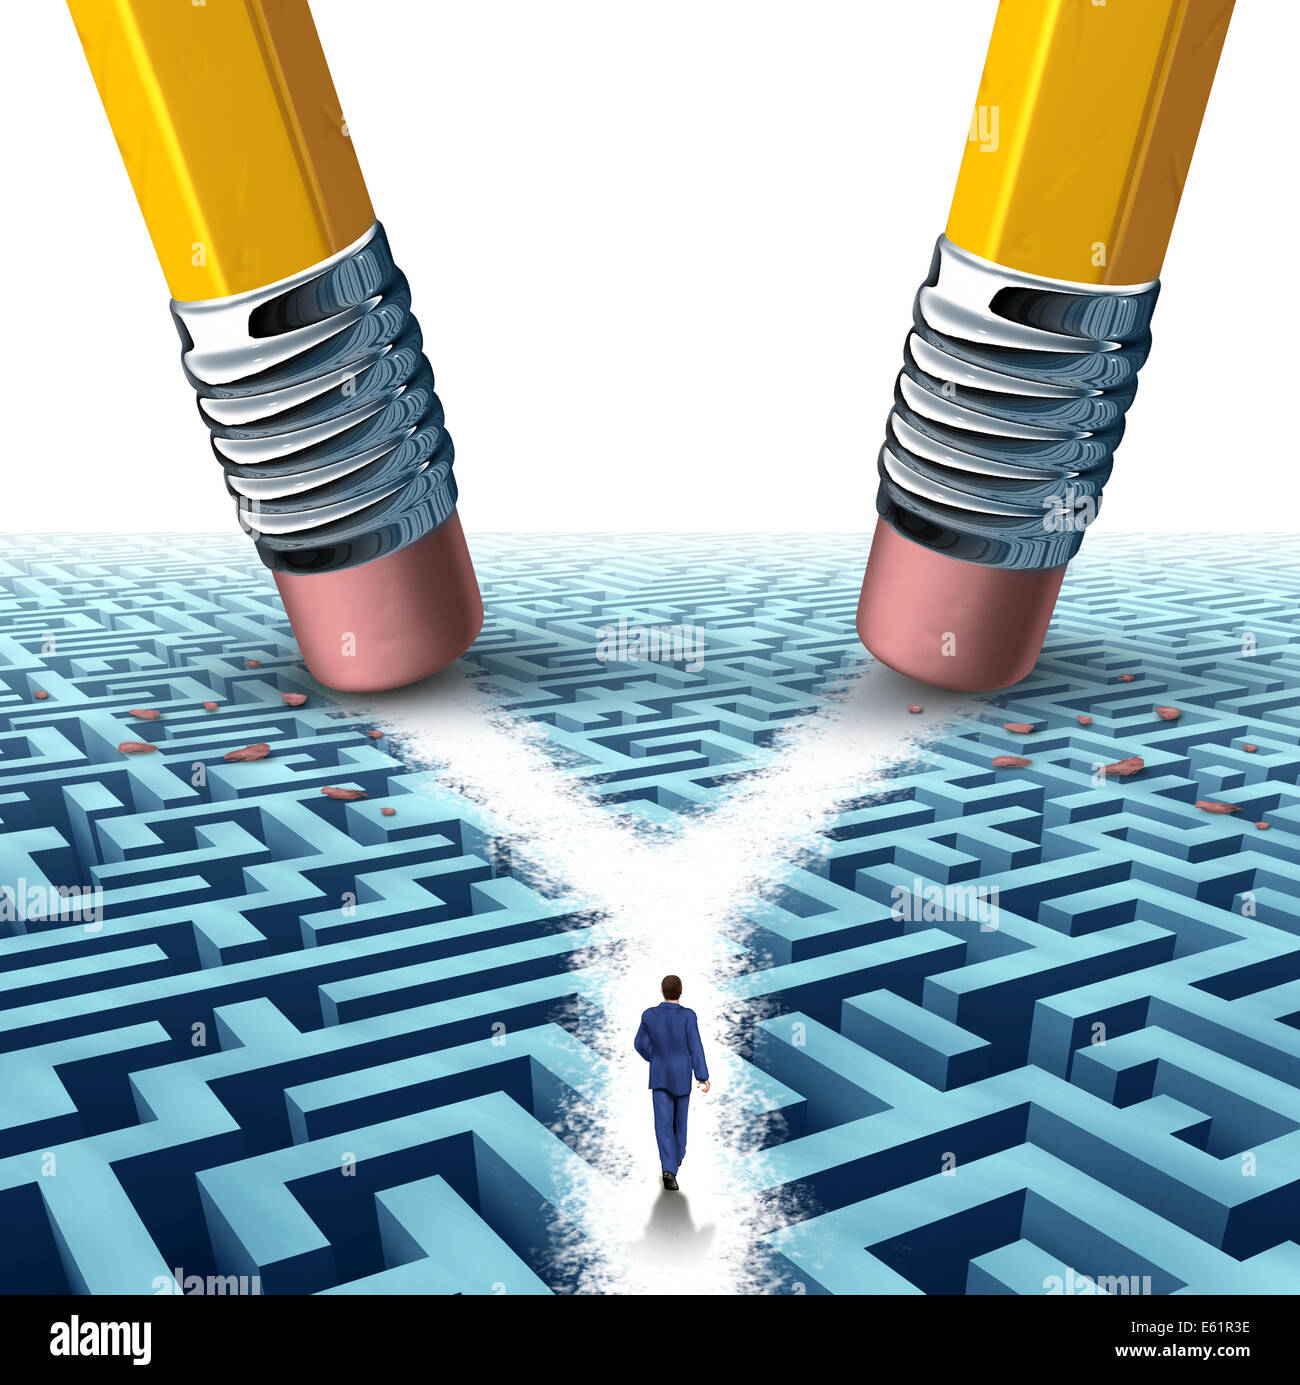 Solution crossroad business concept as a three dimensional maze or labyrinth being erased by two pencils clearing - Stock Image